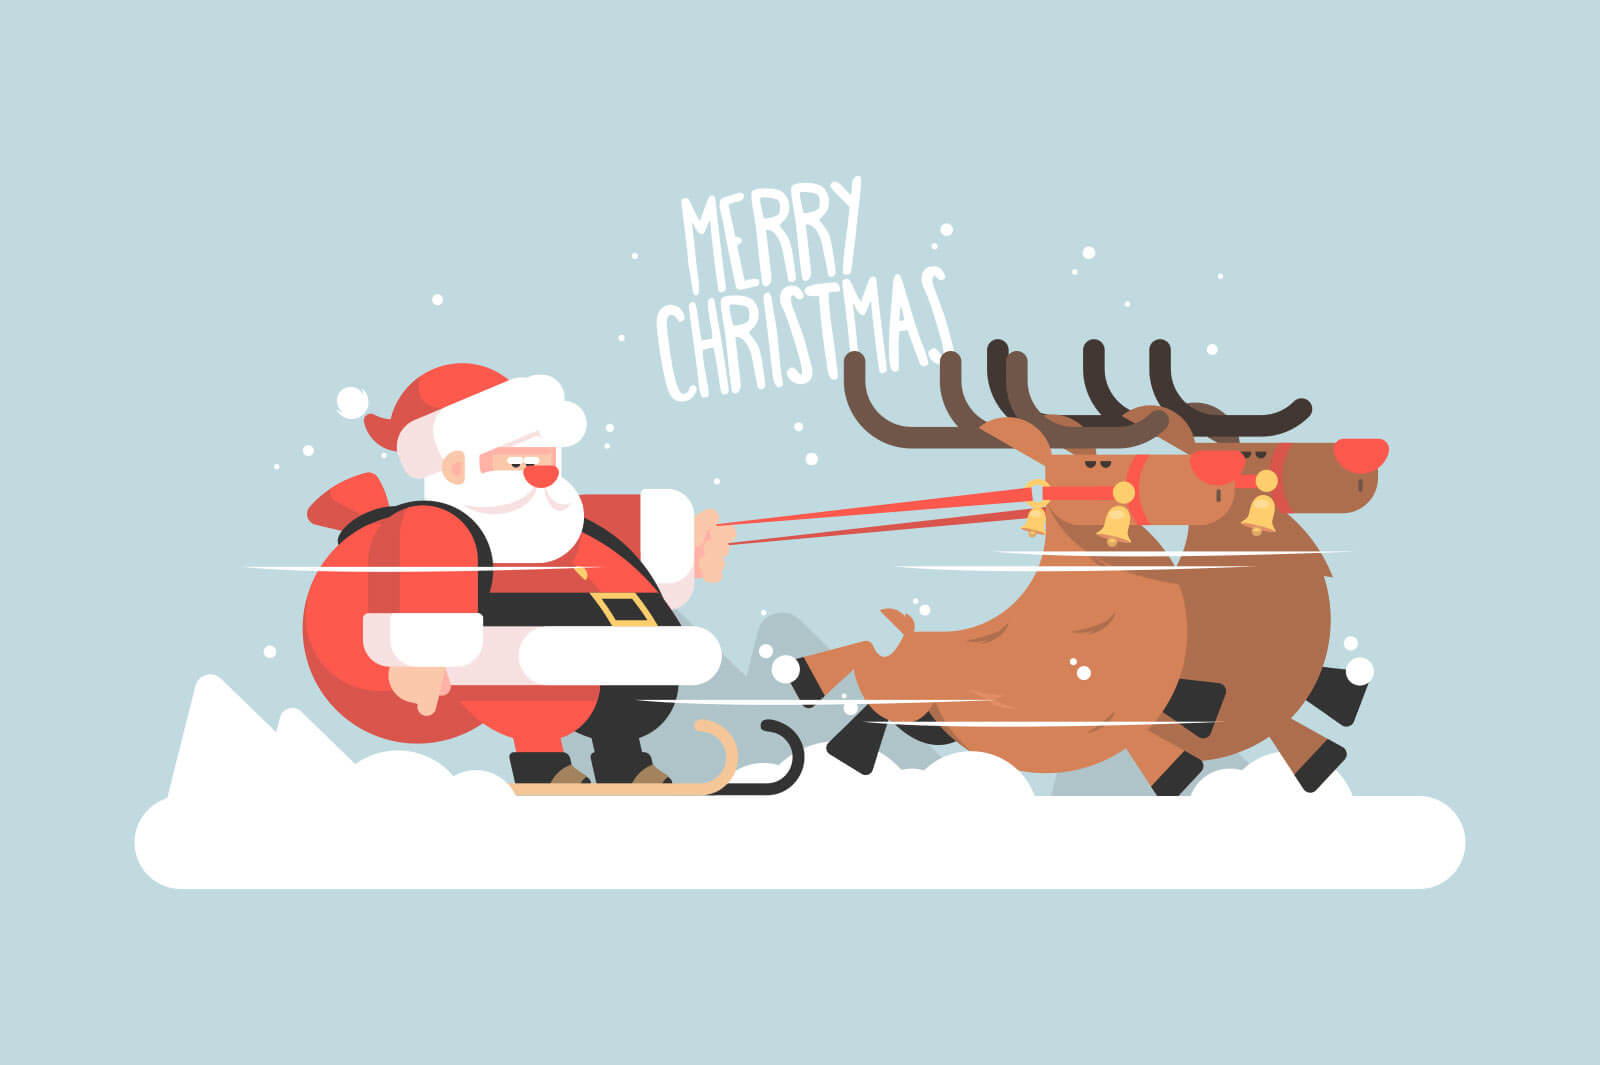 Santa claus riding reindeer vector illustration. Christmas character in costume with beard on sleigh flat style. Winter holiday and merry christmas concept. Isolated on blue background